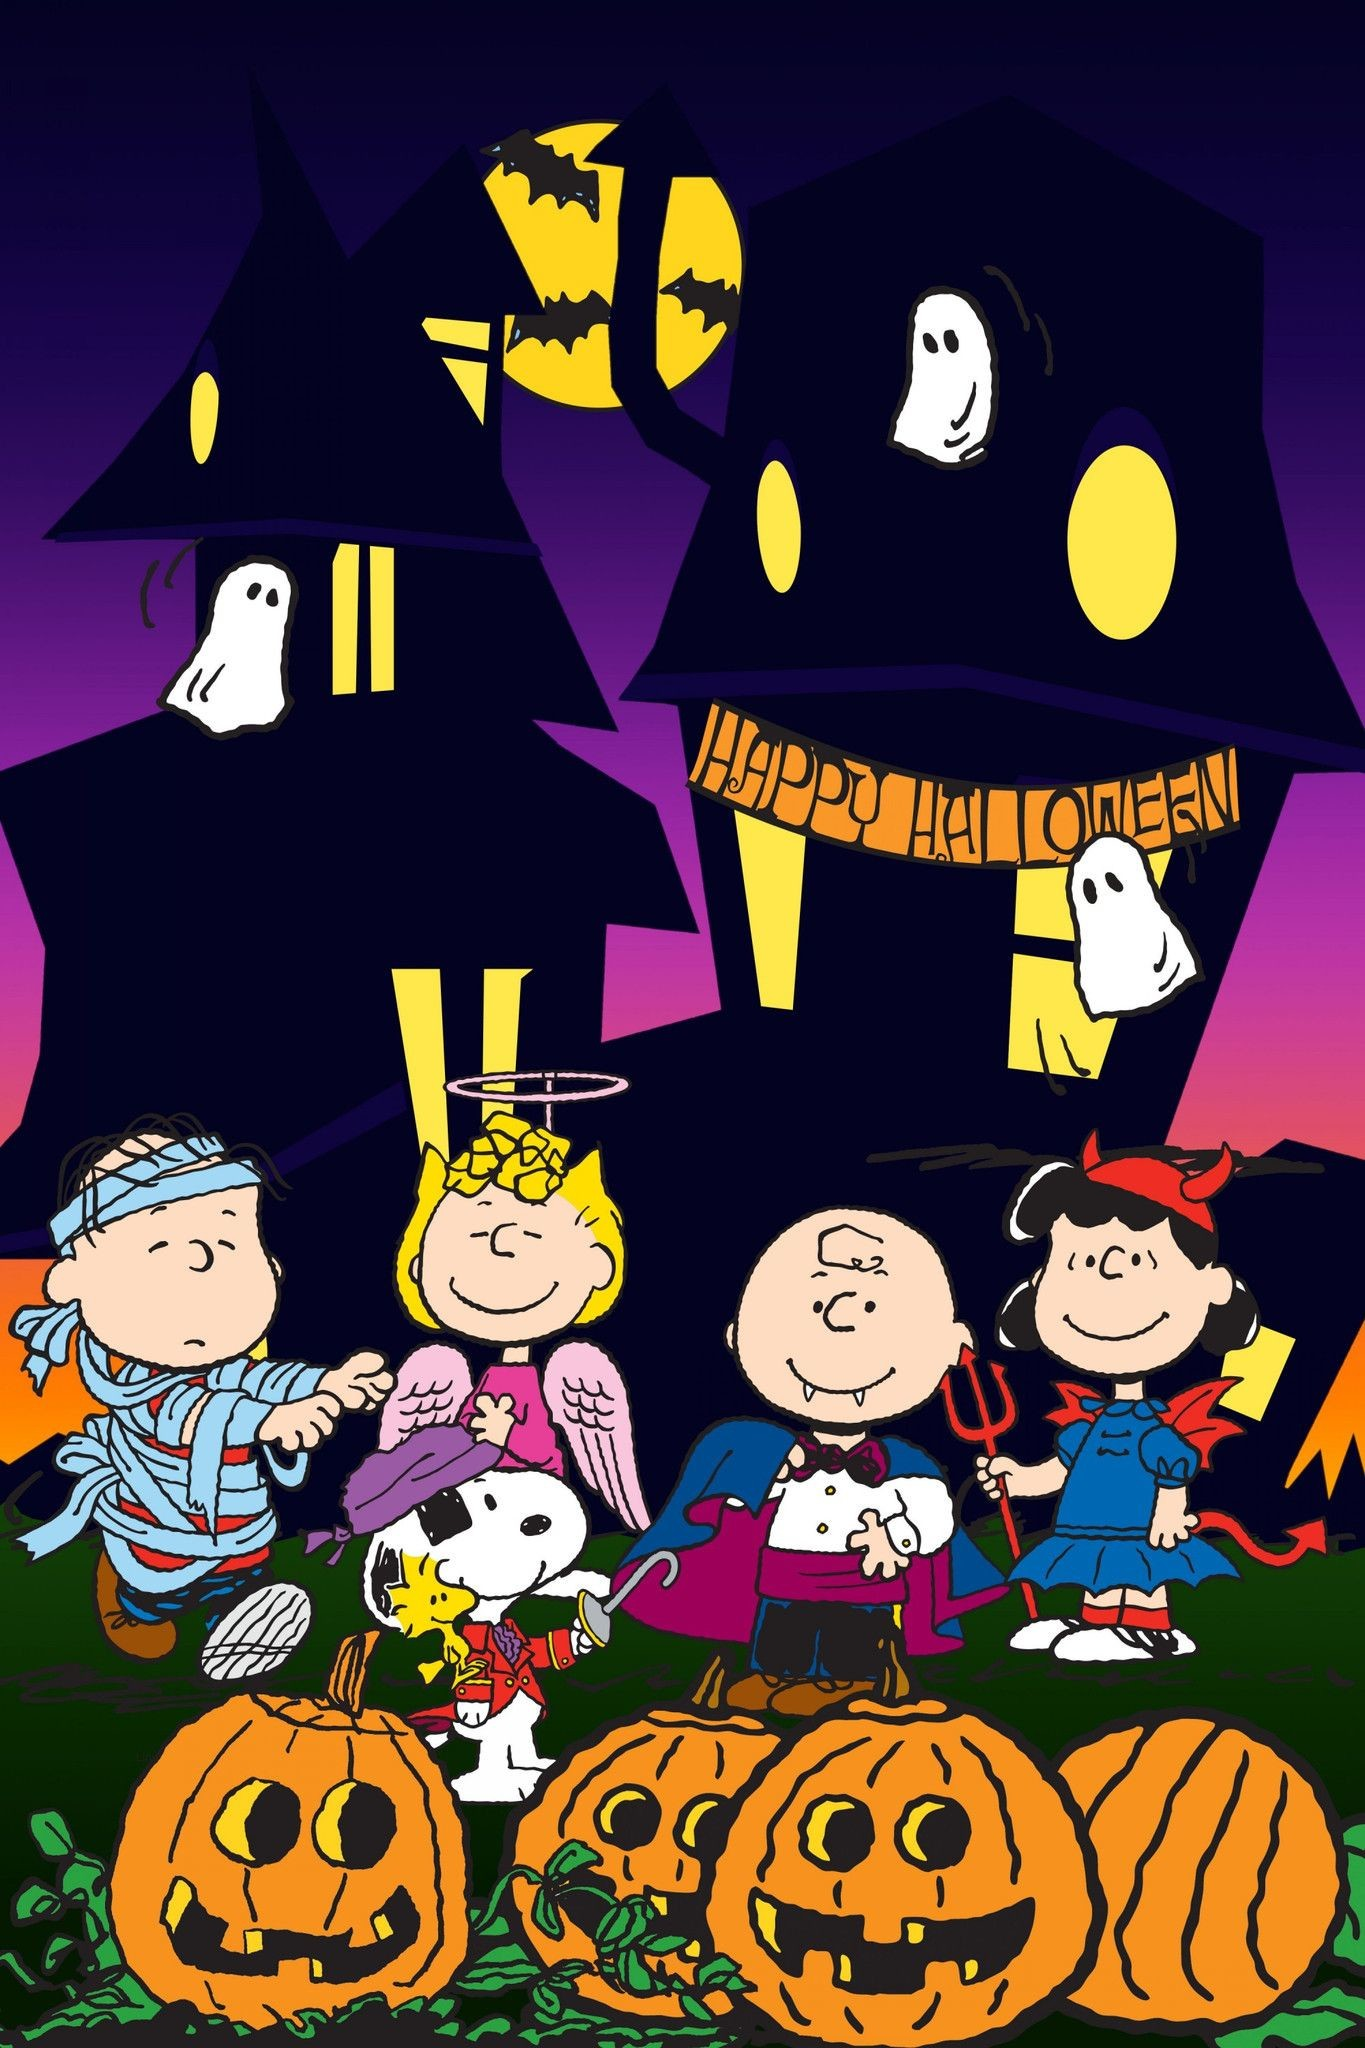 Charlie brown thanksgiving wallpaper 42 images - Snoopy halloween images ...